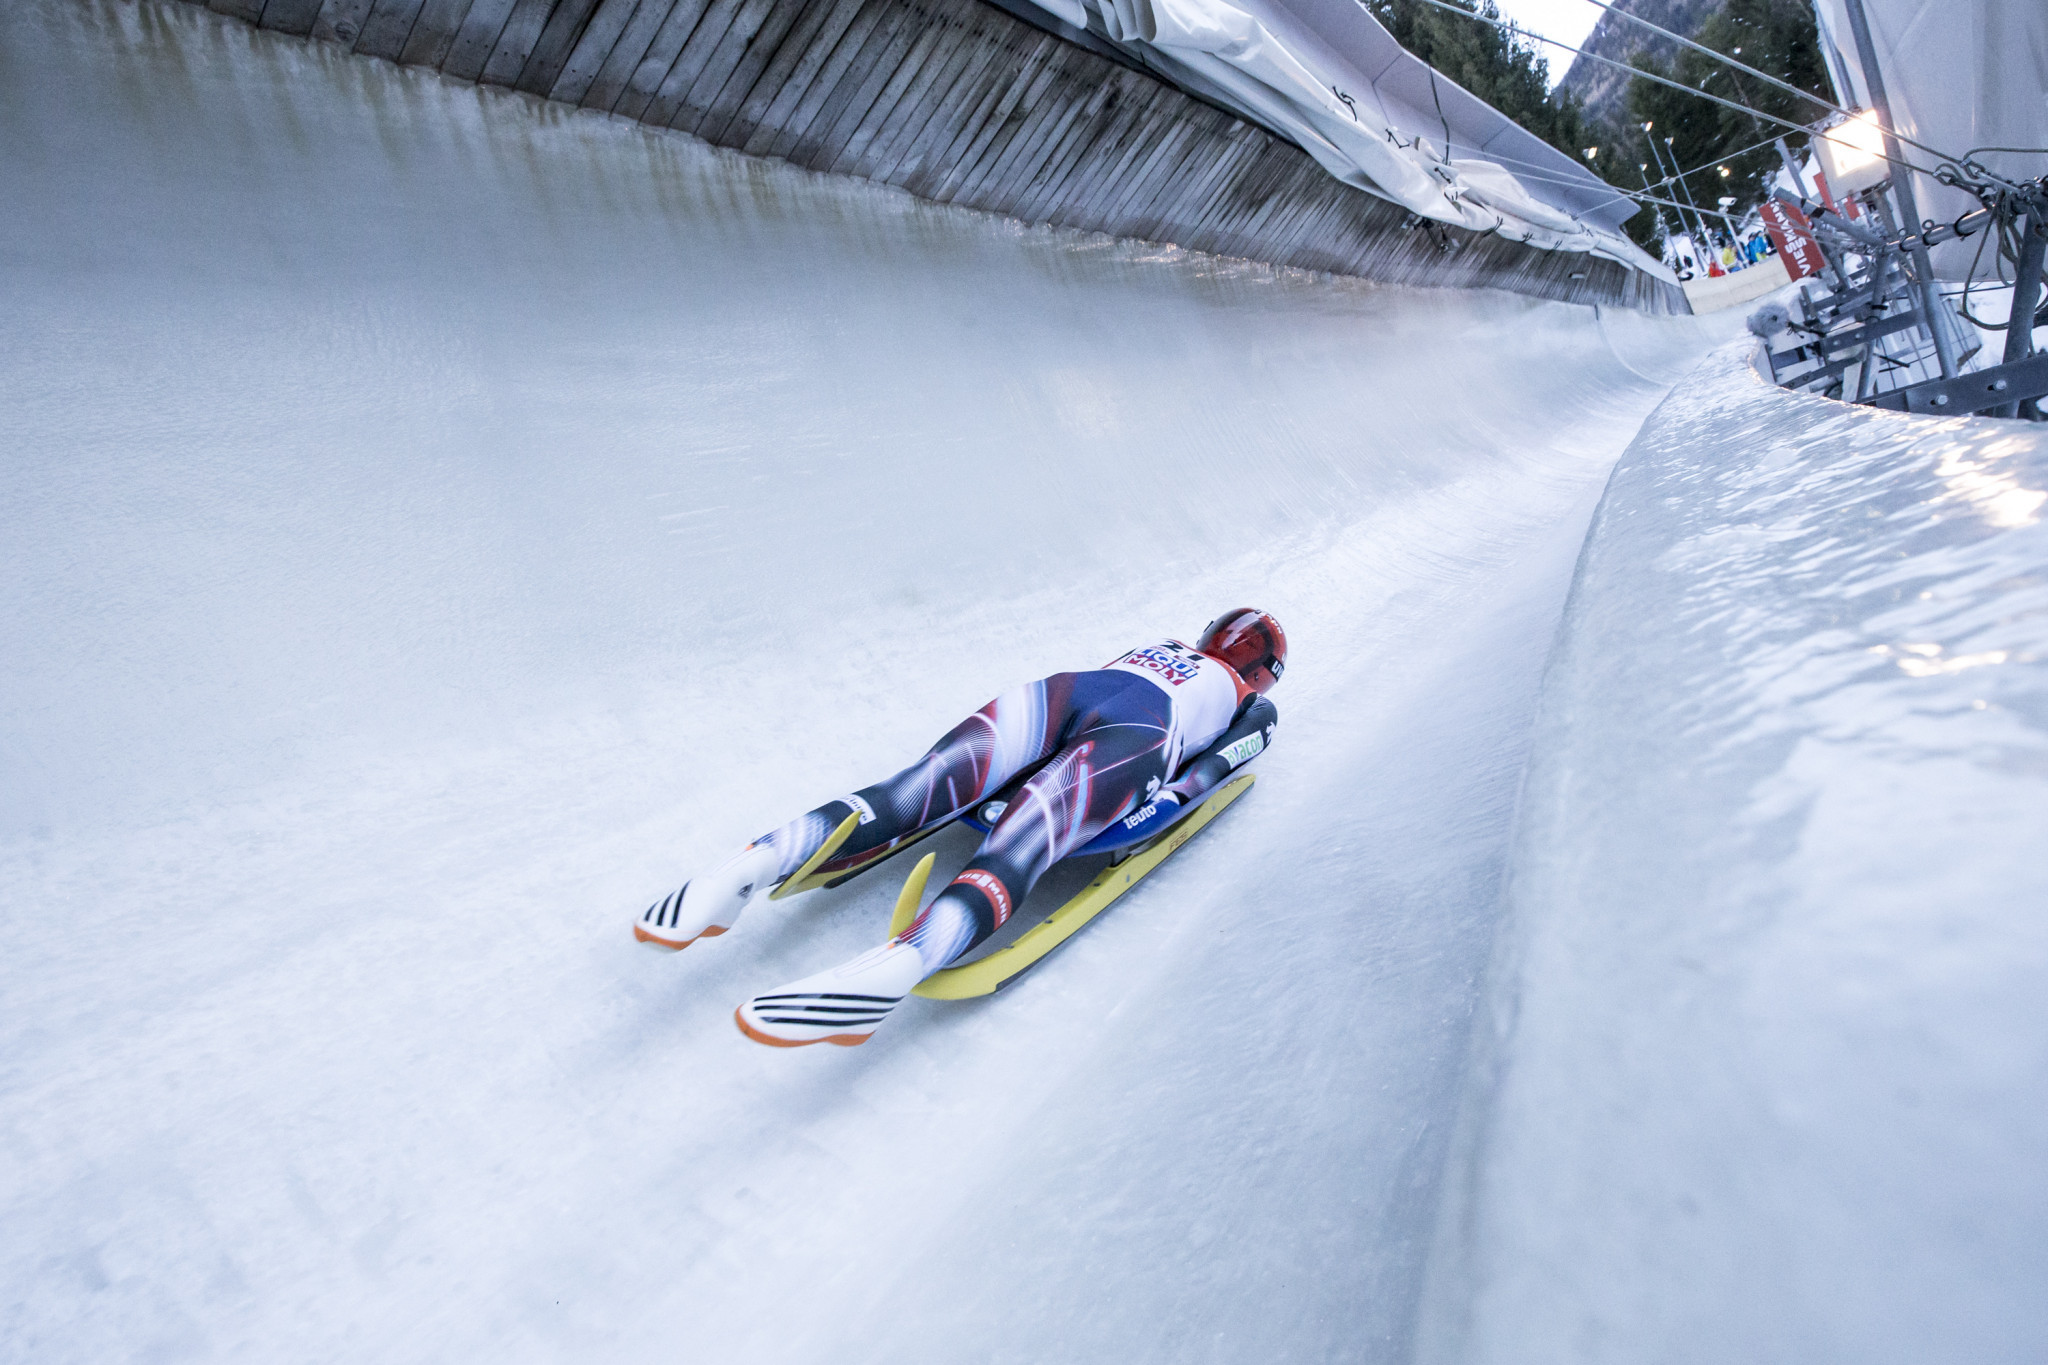 Germany's Taubitz beats team-mate to win first Luge World Cup race in Calgary